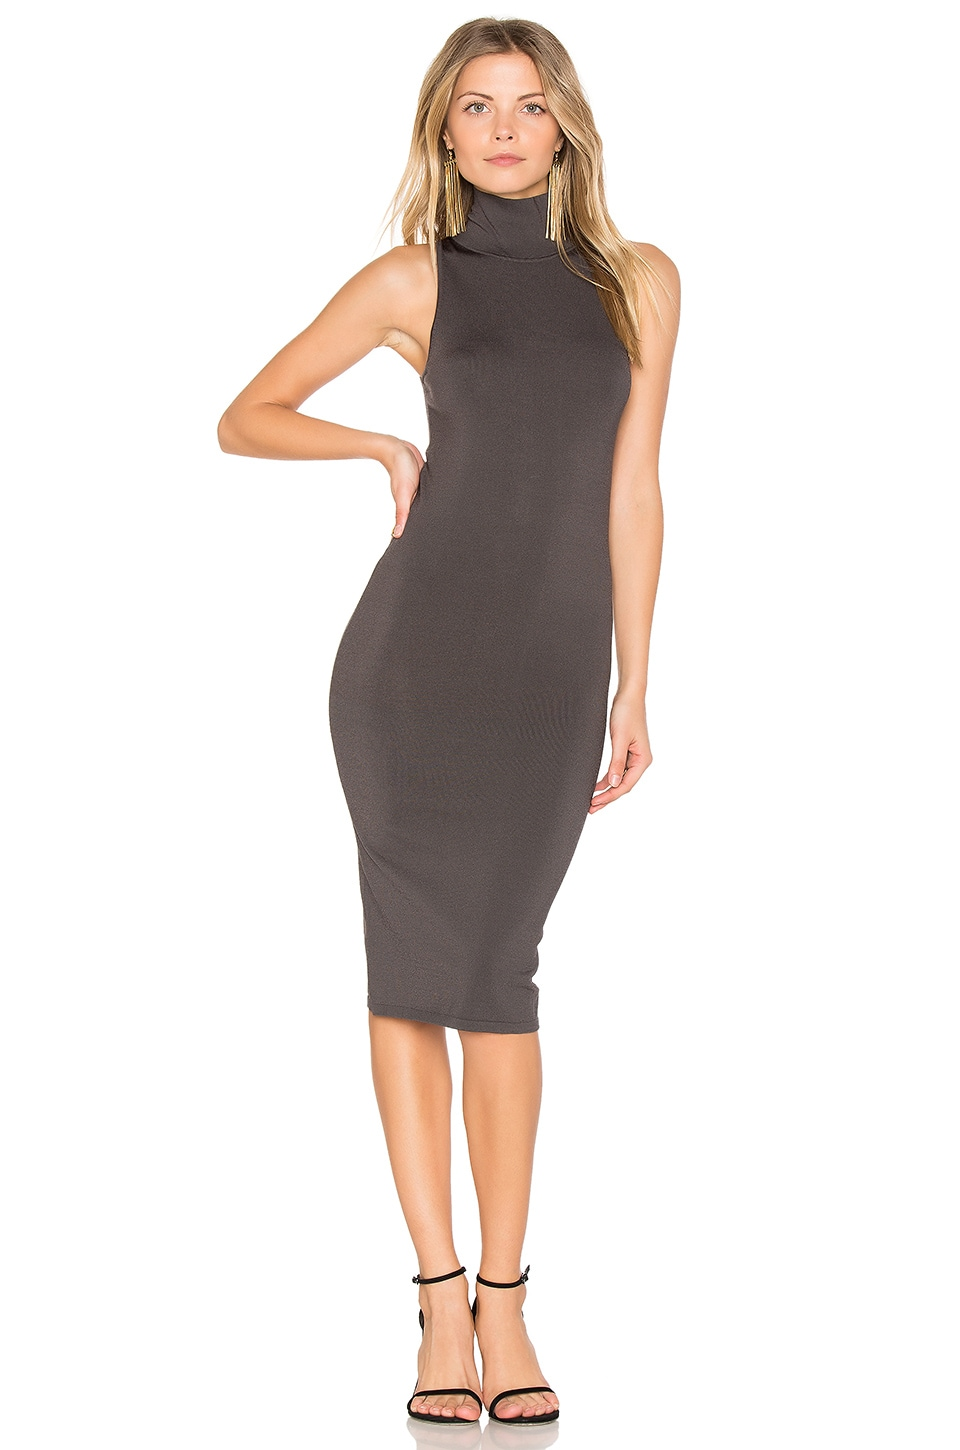 Atlantis Bodycon Midi Dress by Central Park West